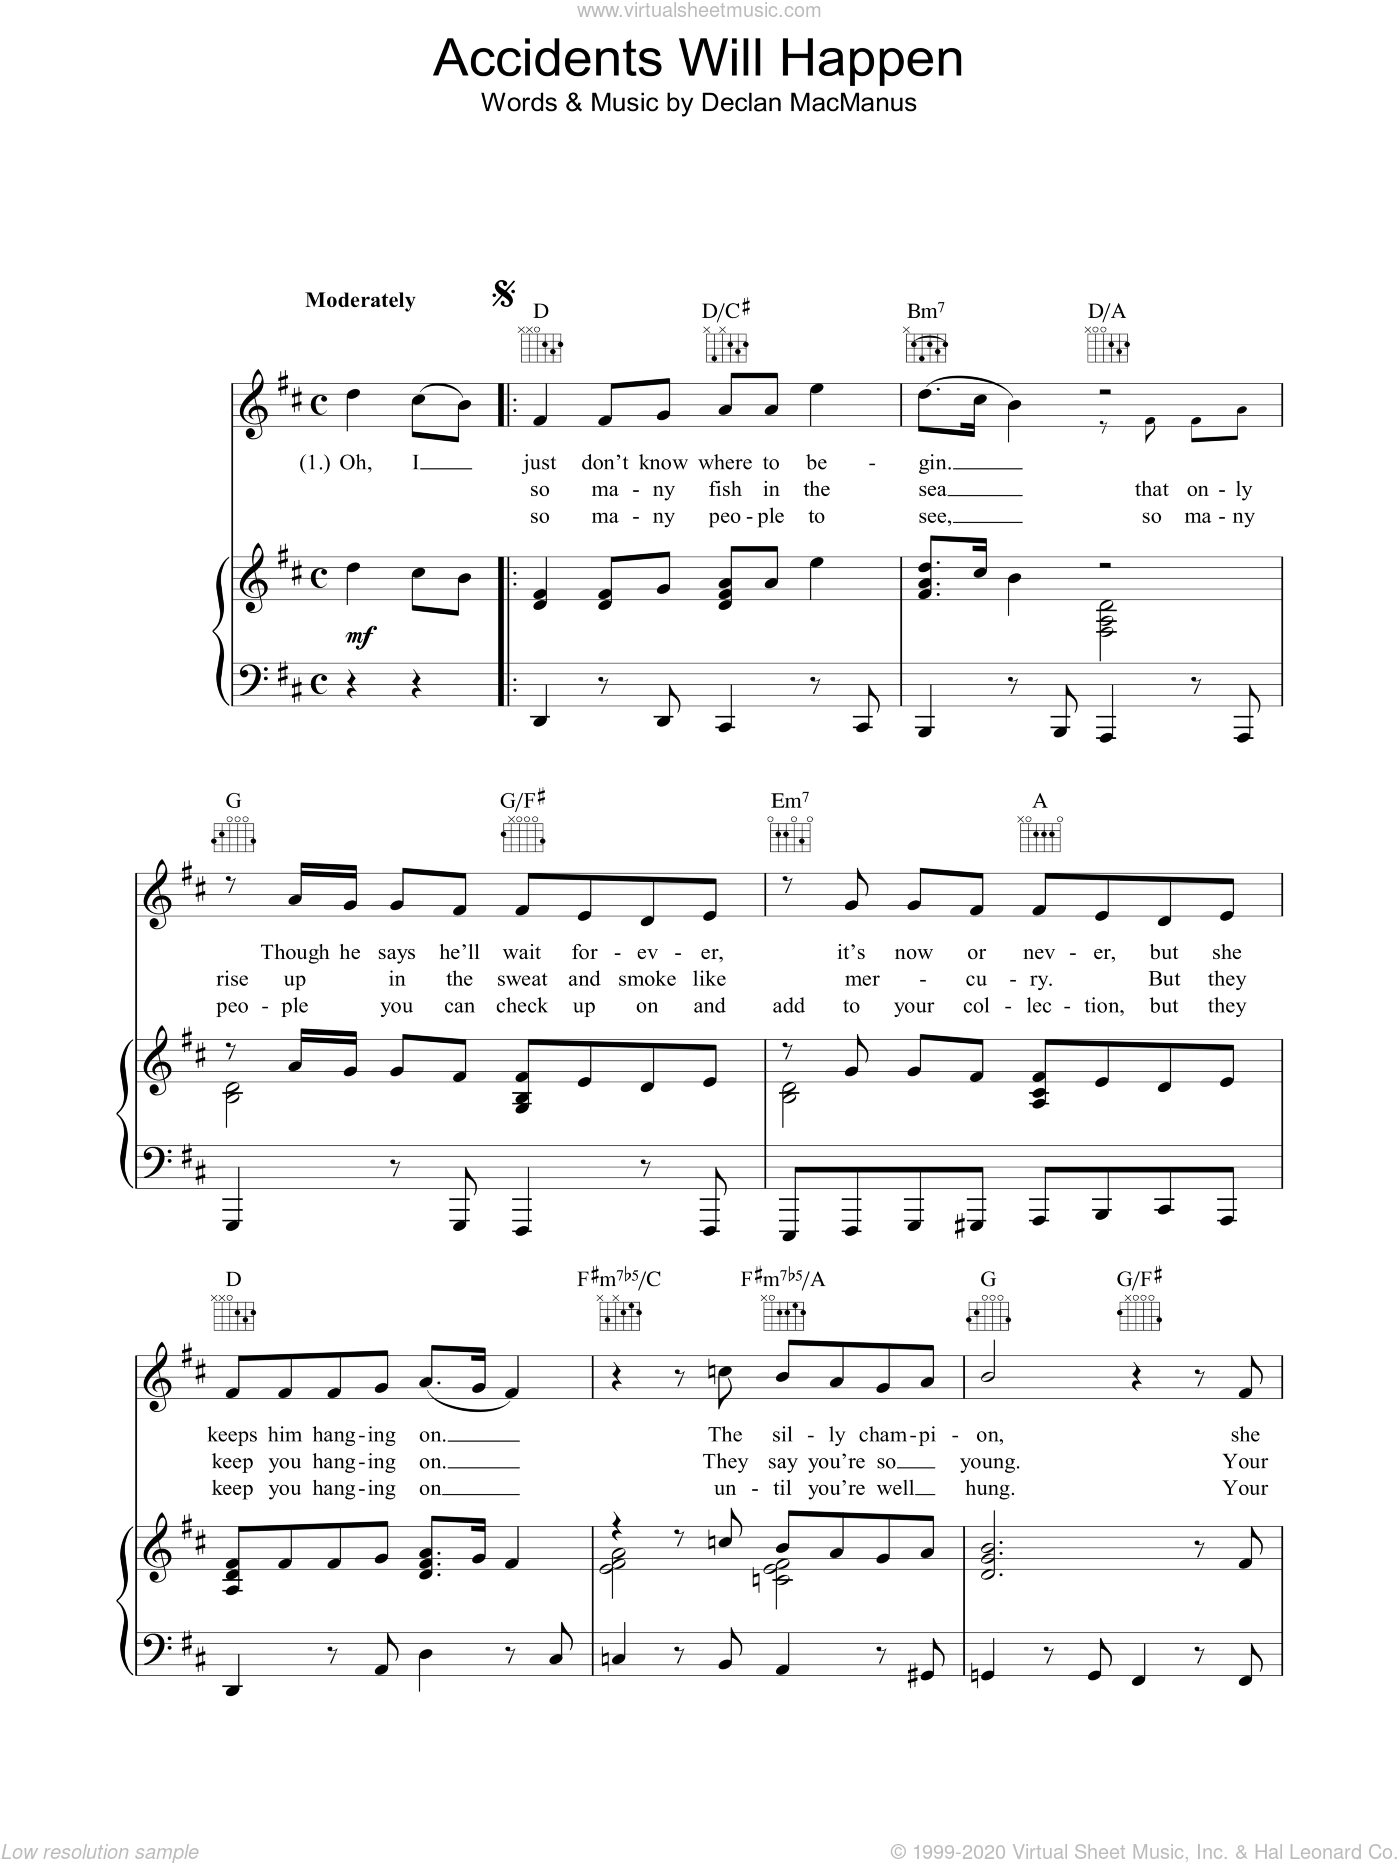 Accidents Will Happen sheet music for voice, piano or guitar by Elvis Costello and Declan Macmanus, intermediate skill level